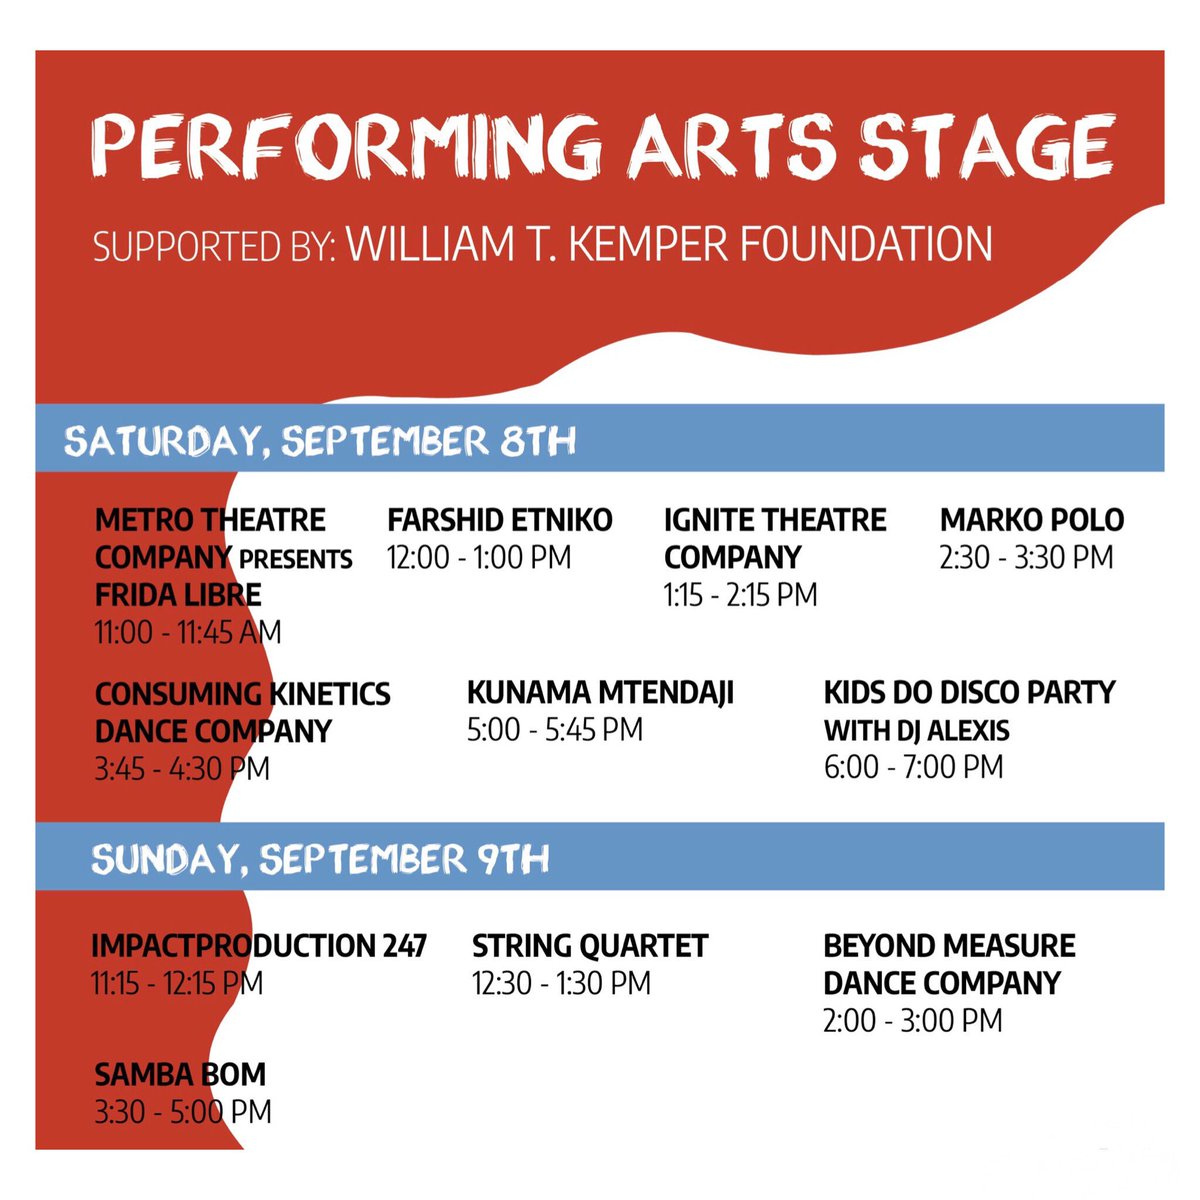 The Performing Arts Stage lineup is official! We have lots of fun interactive & musical performances for you this year. 🎻🥁 #performingarts #stlartfair